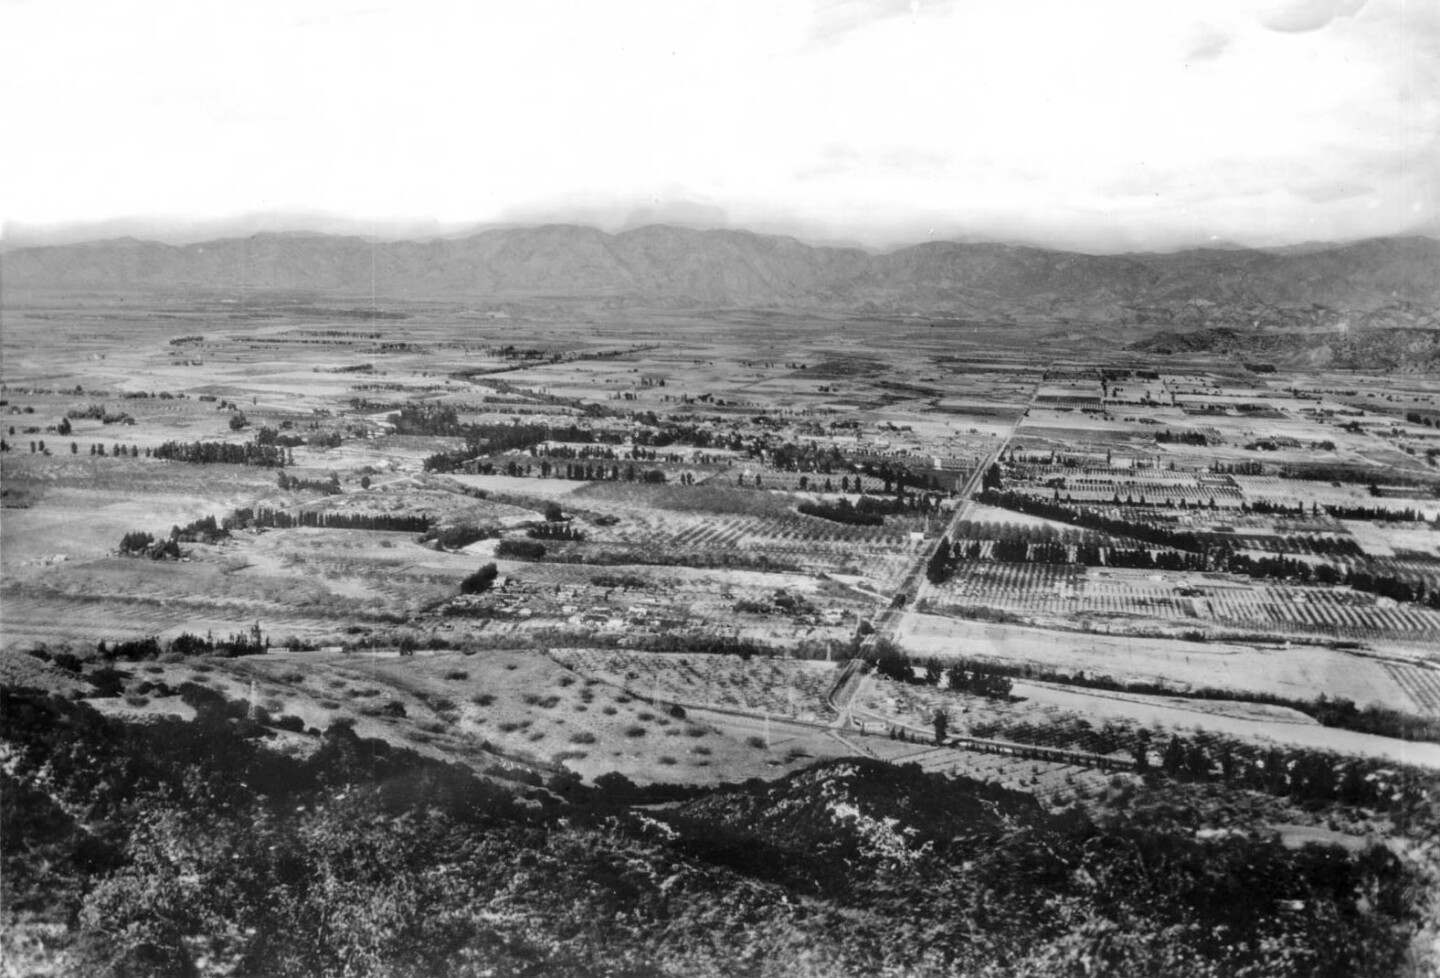 View of North Hollywood and the San Fernando Valley from the Santa Monica Mountains, 1909. Courtesy of the USC Libraries - California Historical Society Collection.